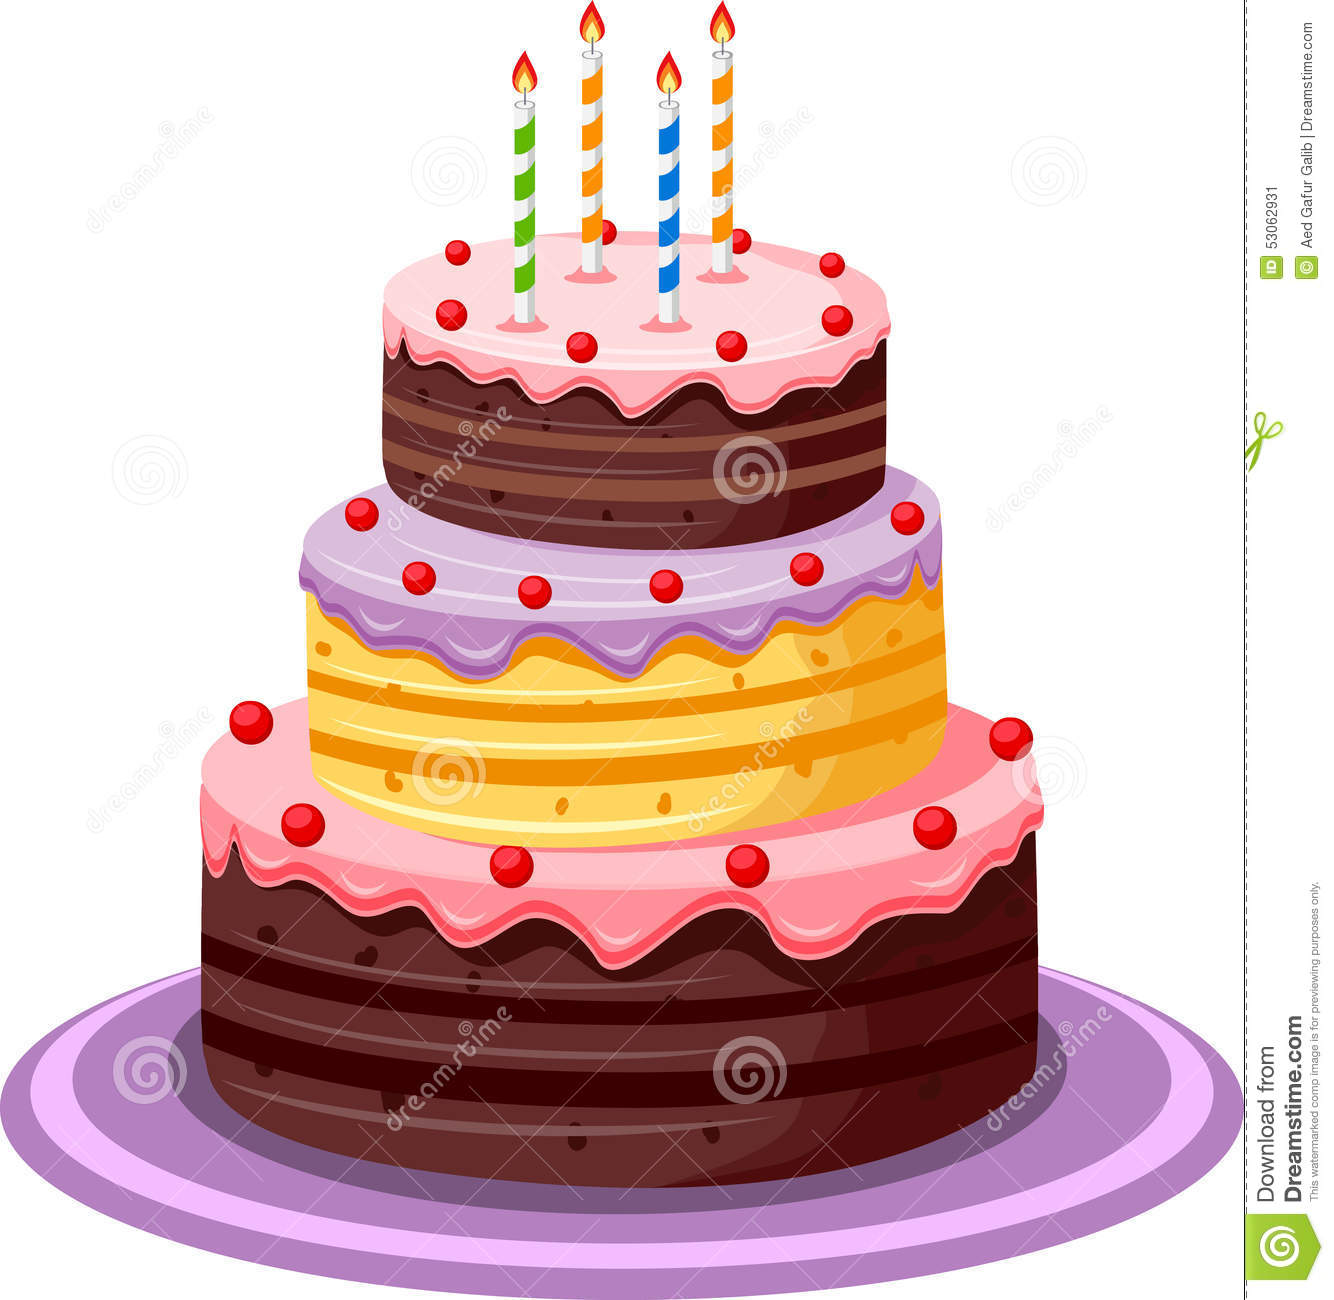 Birthday Cake Stock Vector - Image: 53062931